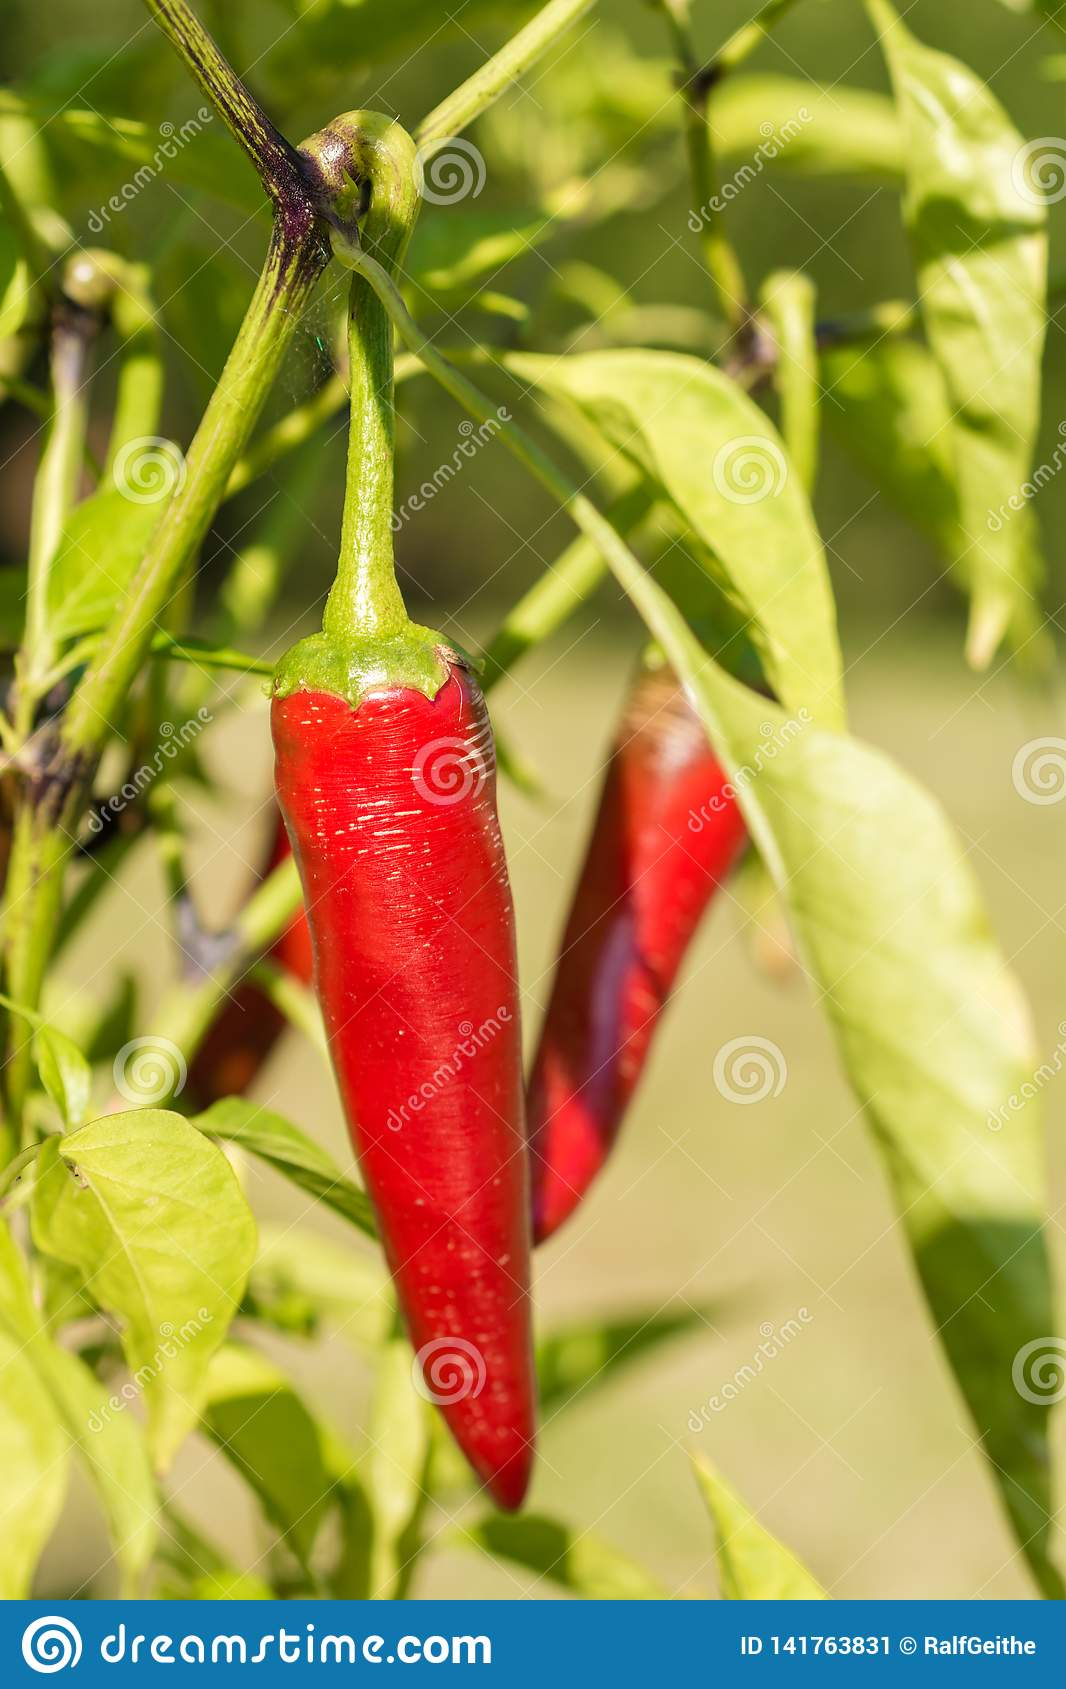 Chili peppers grow mature in their own garden